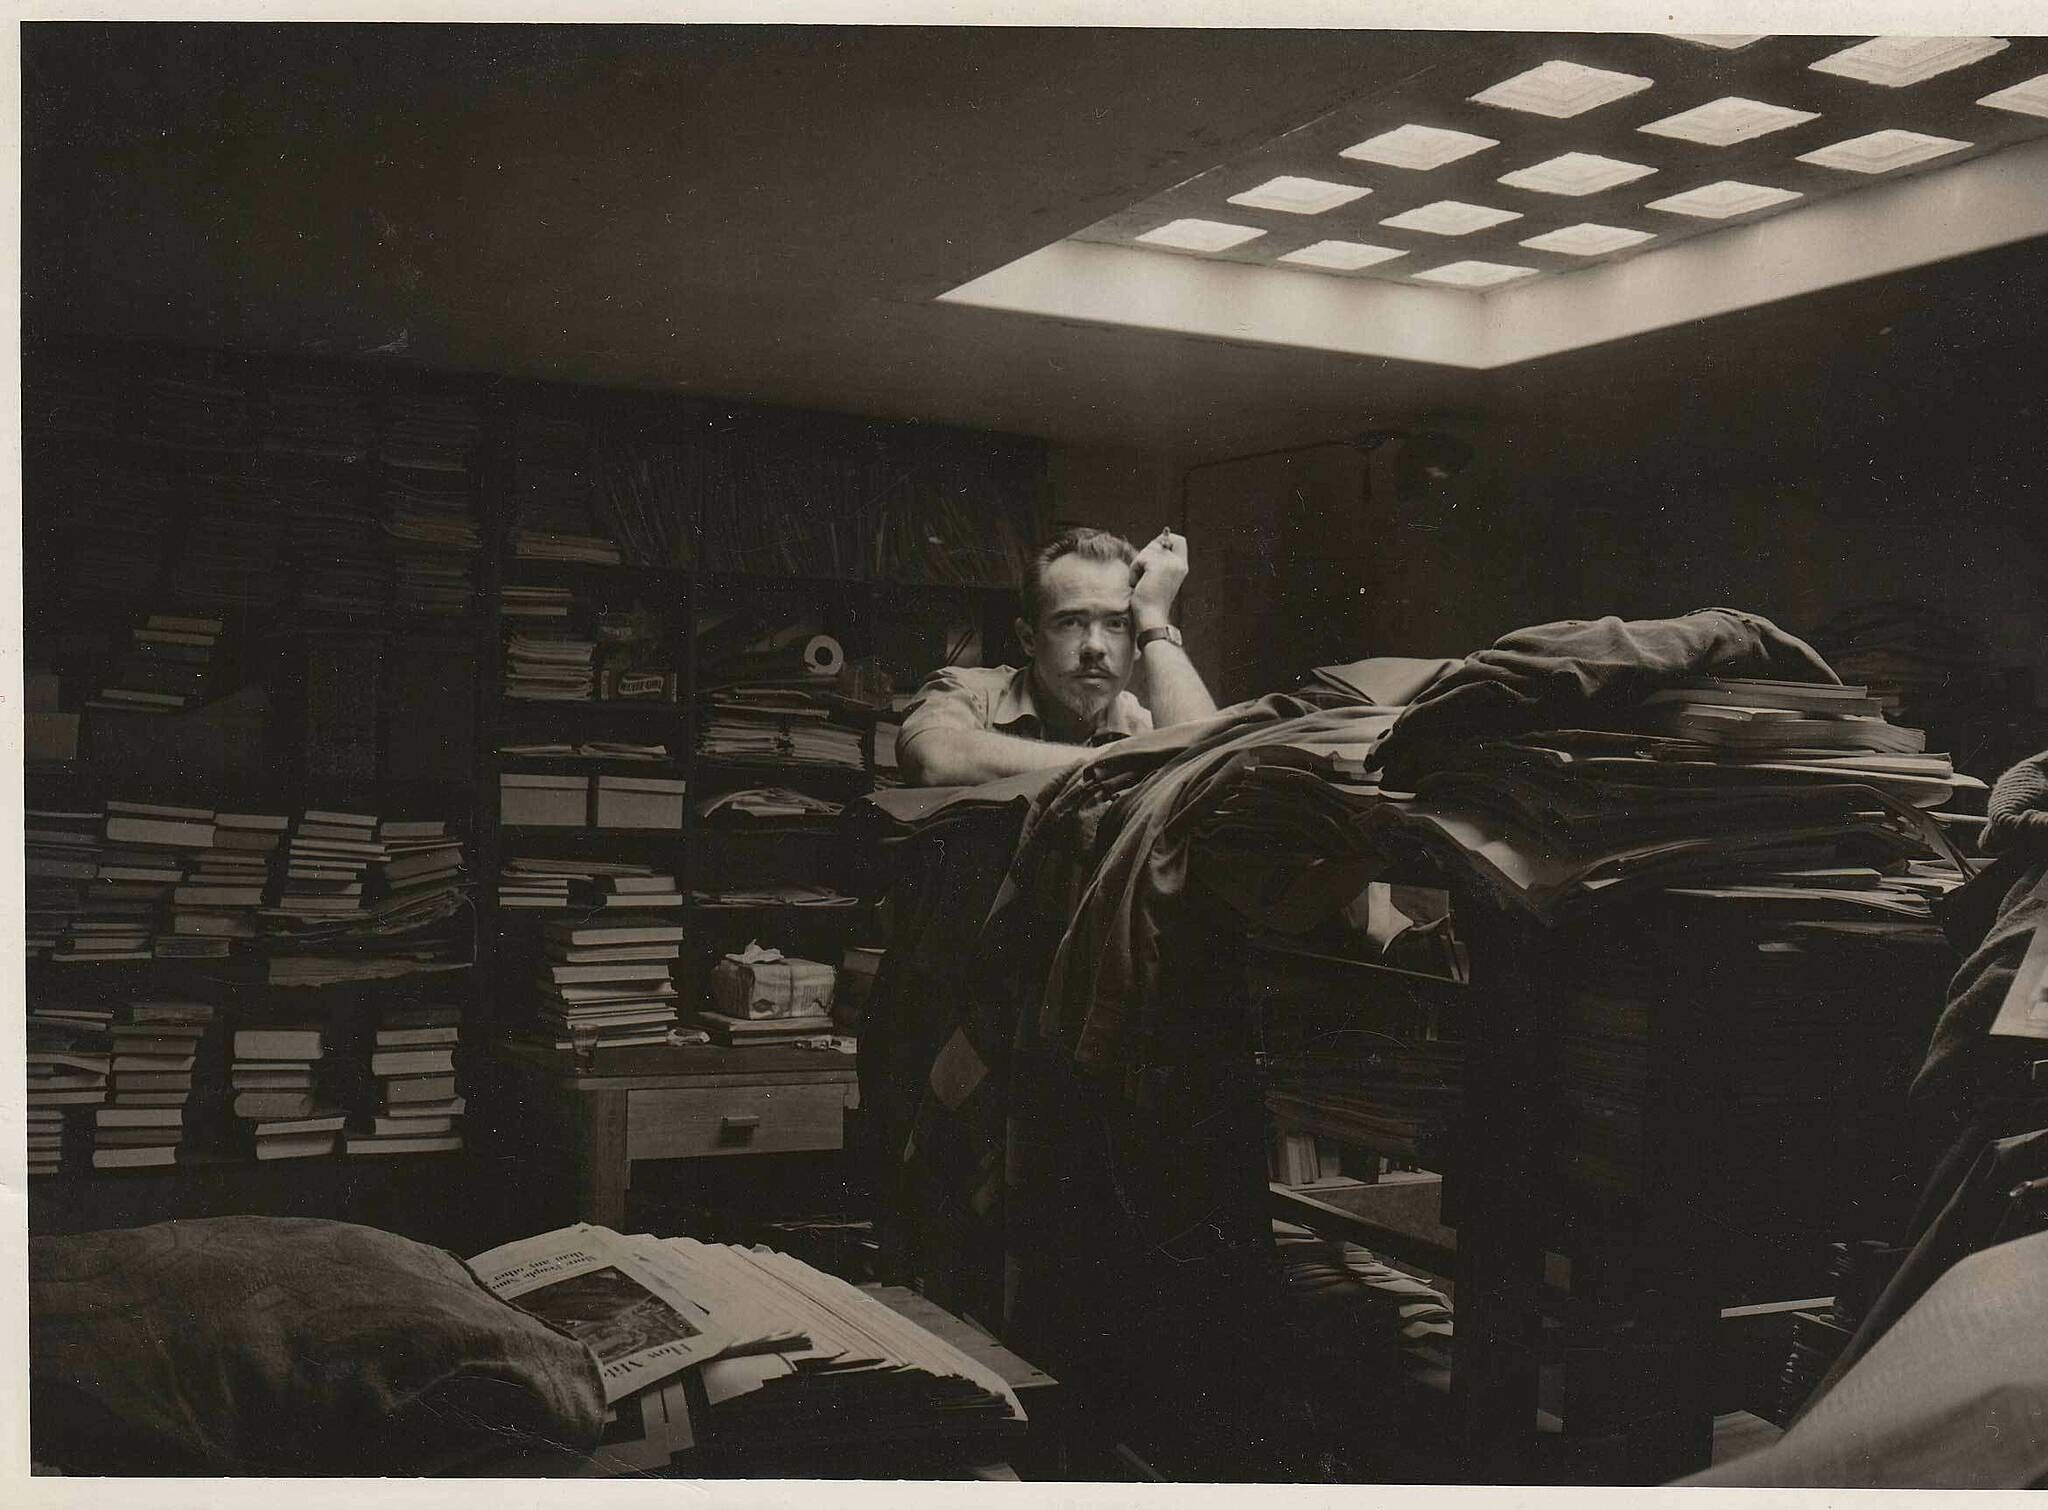 The composer Conlon Nancarrow stands amid papers and books in his library.